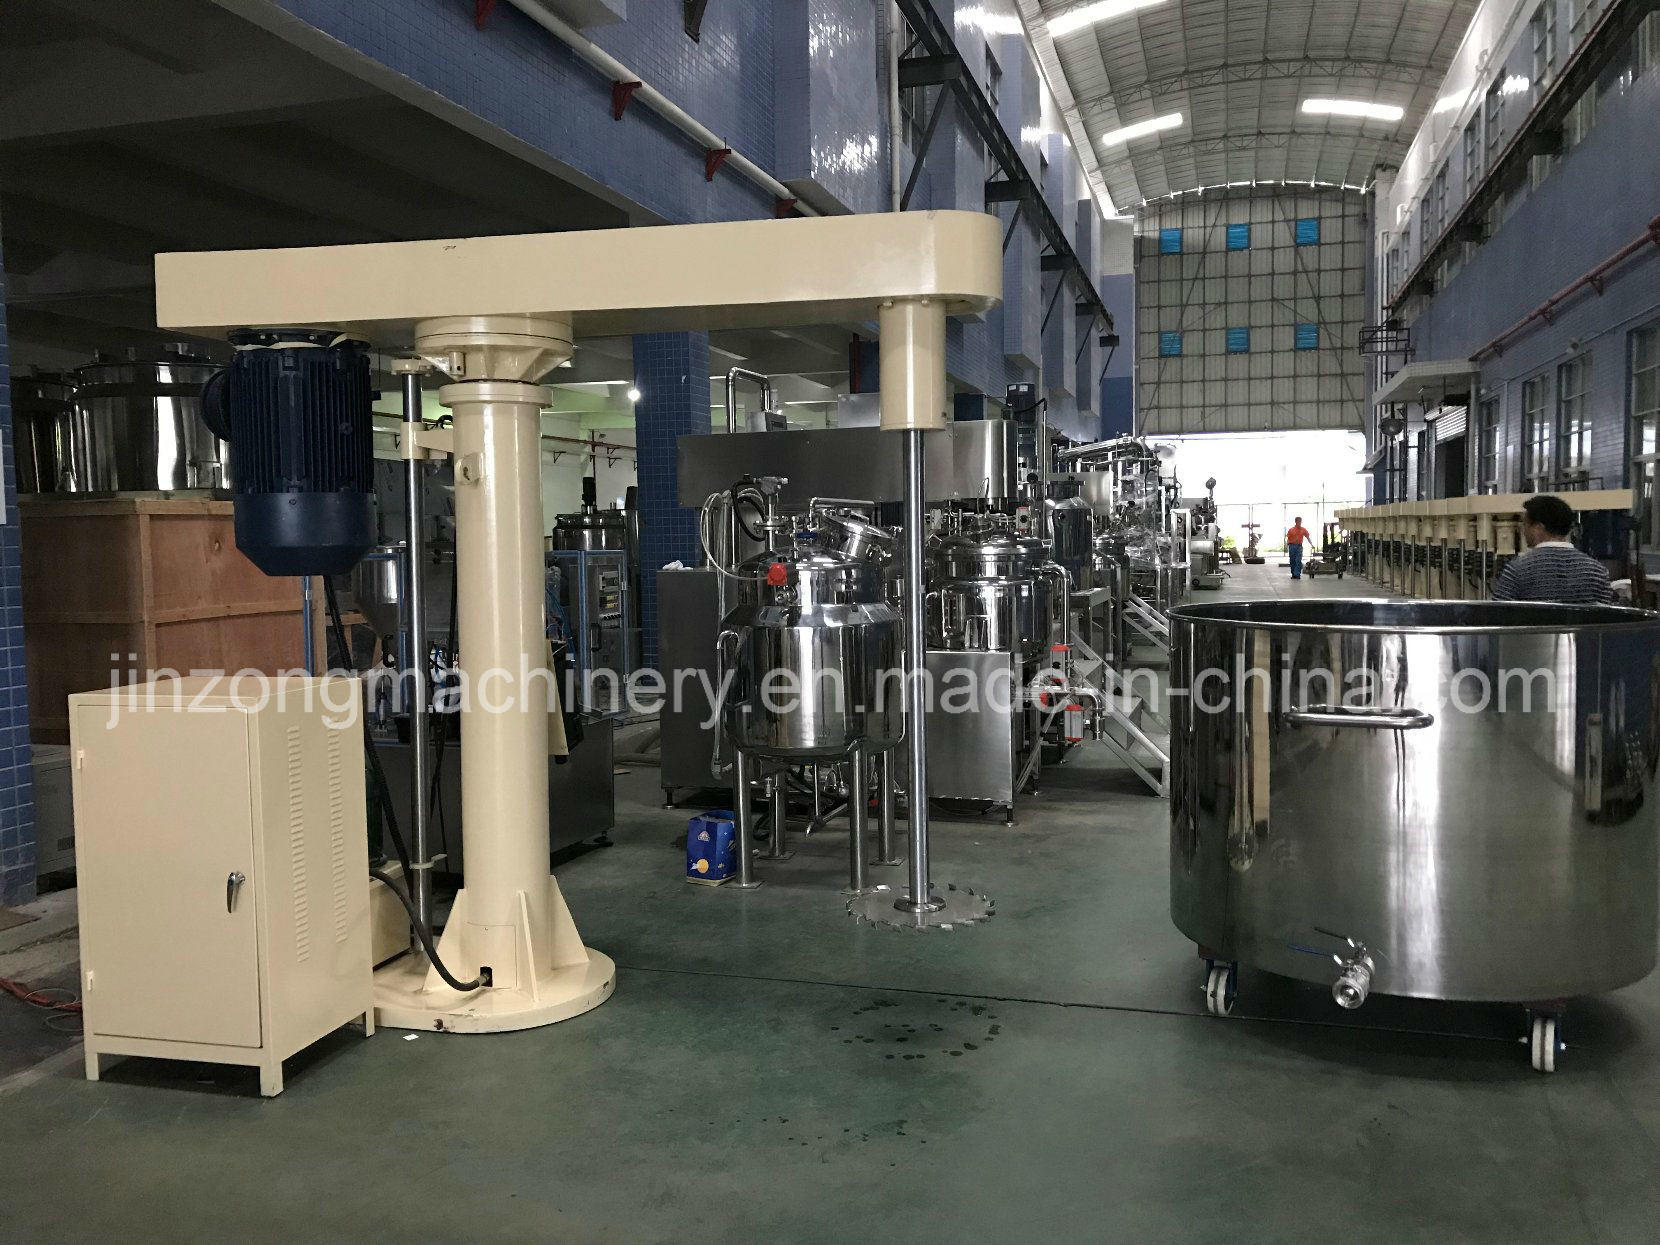 Variable High Speed Paint Mixer Disperser Making Mixing Machine 11kw for Coating Paint Resin Pigment